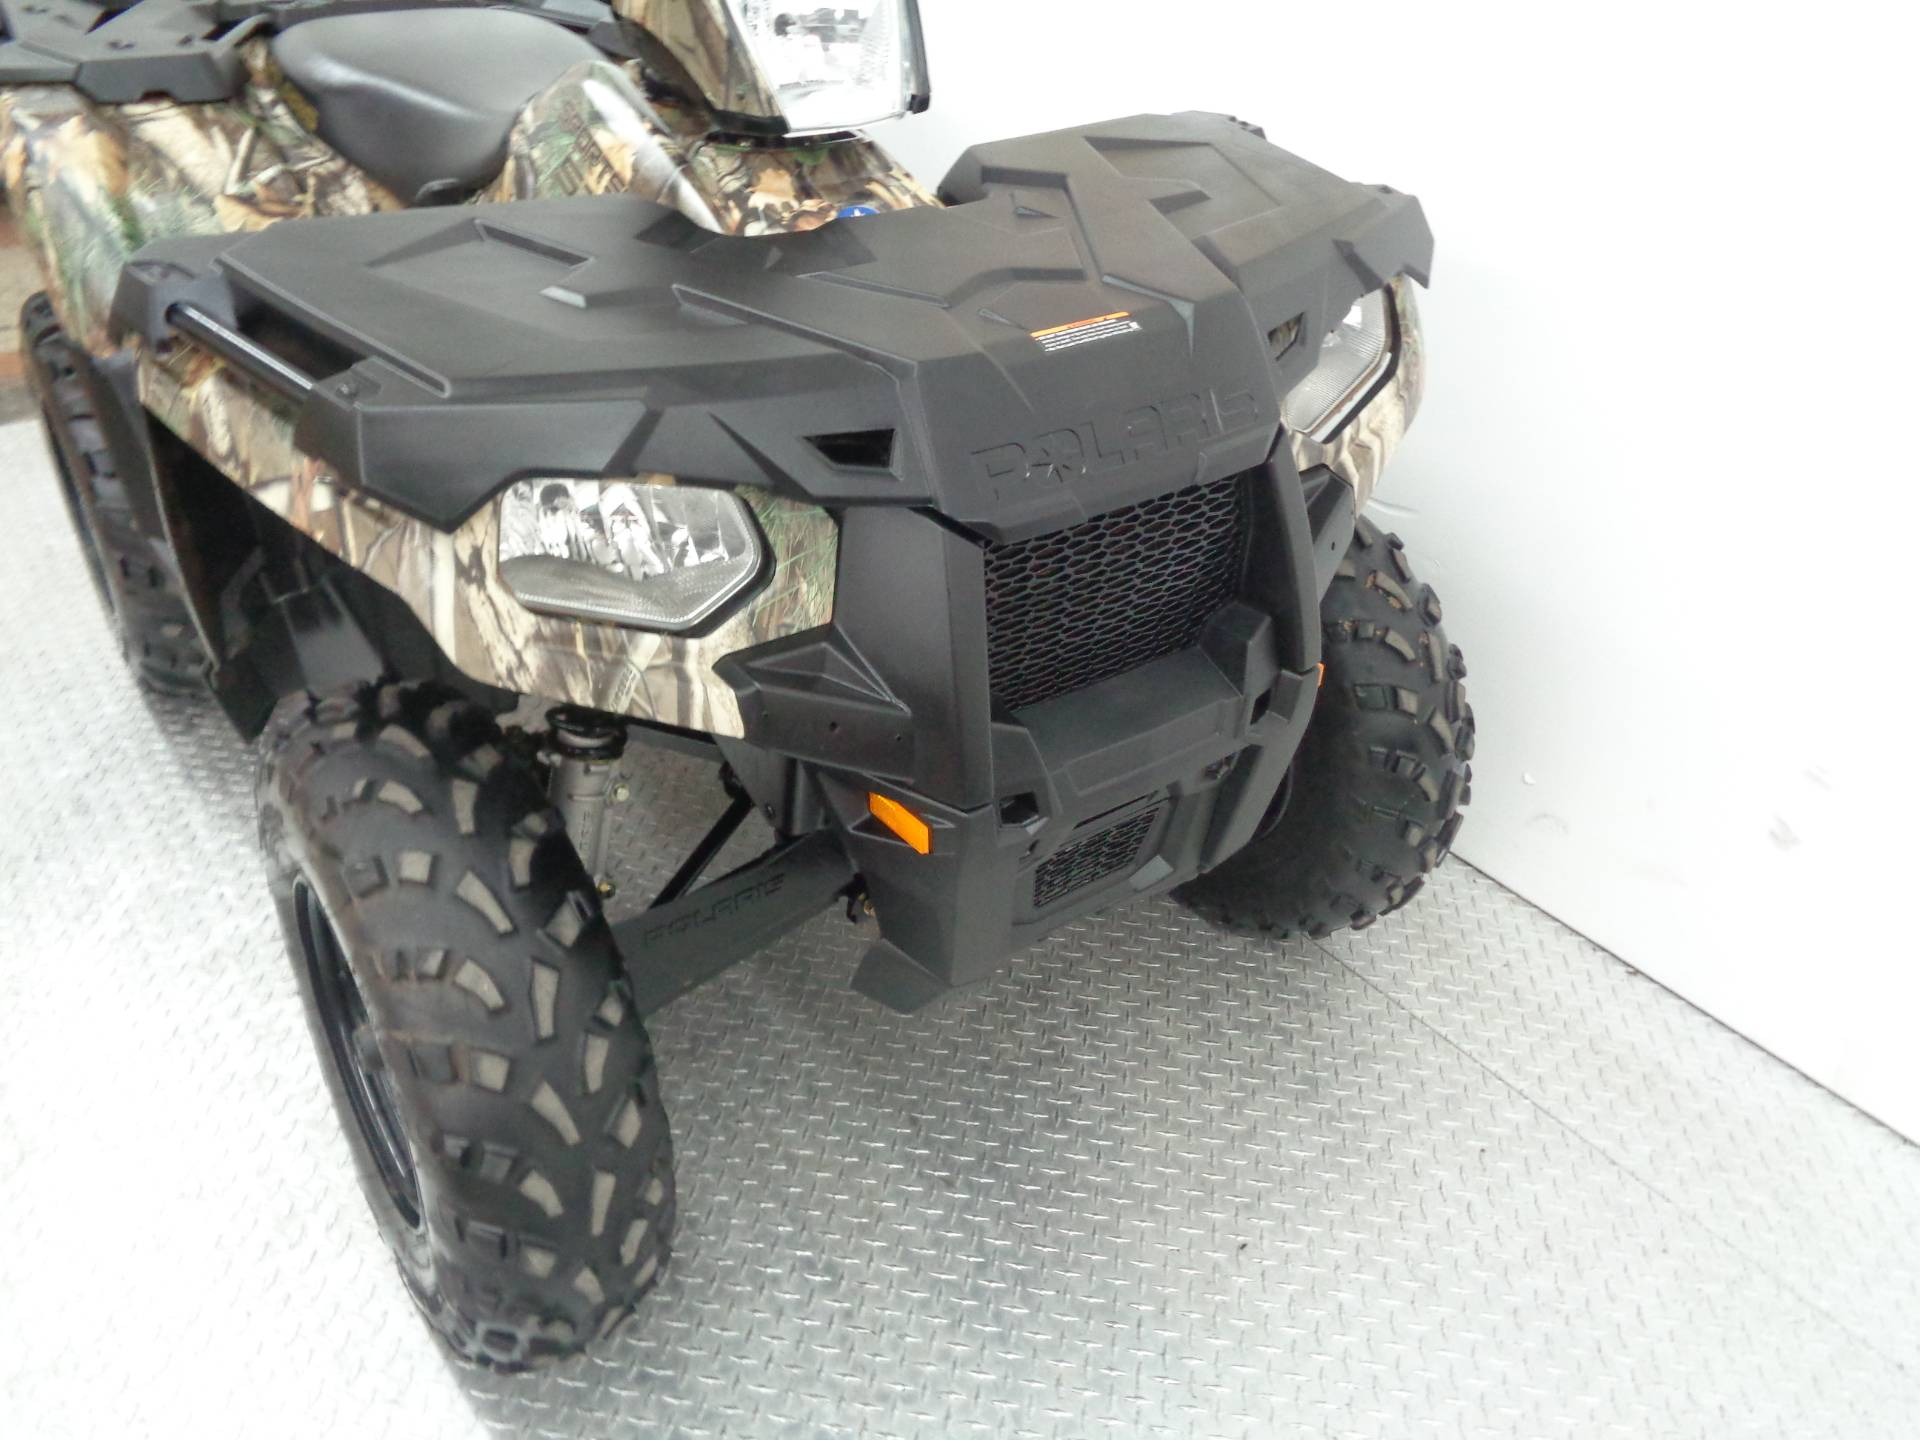 2015 Polaris Sportsman® 570 in Tulsa, Oklahoma - Photo 2